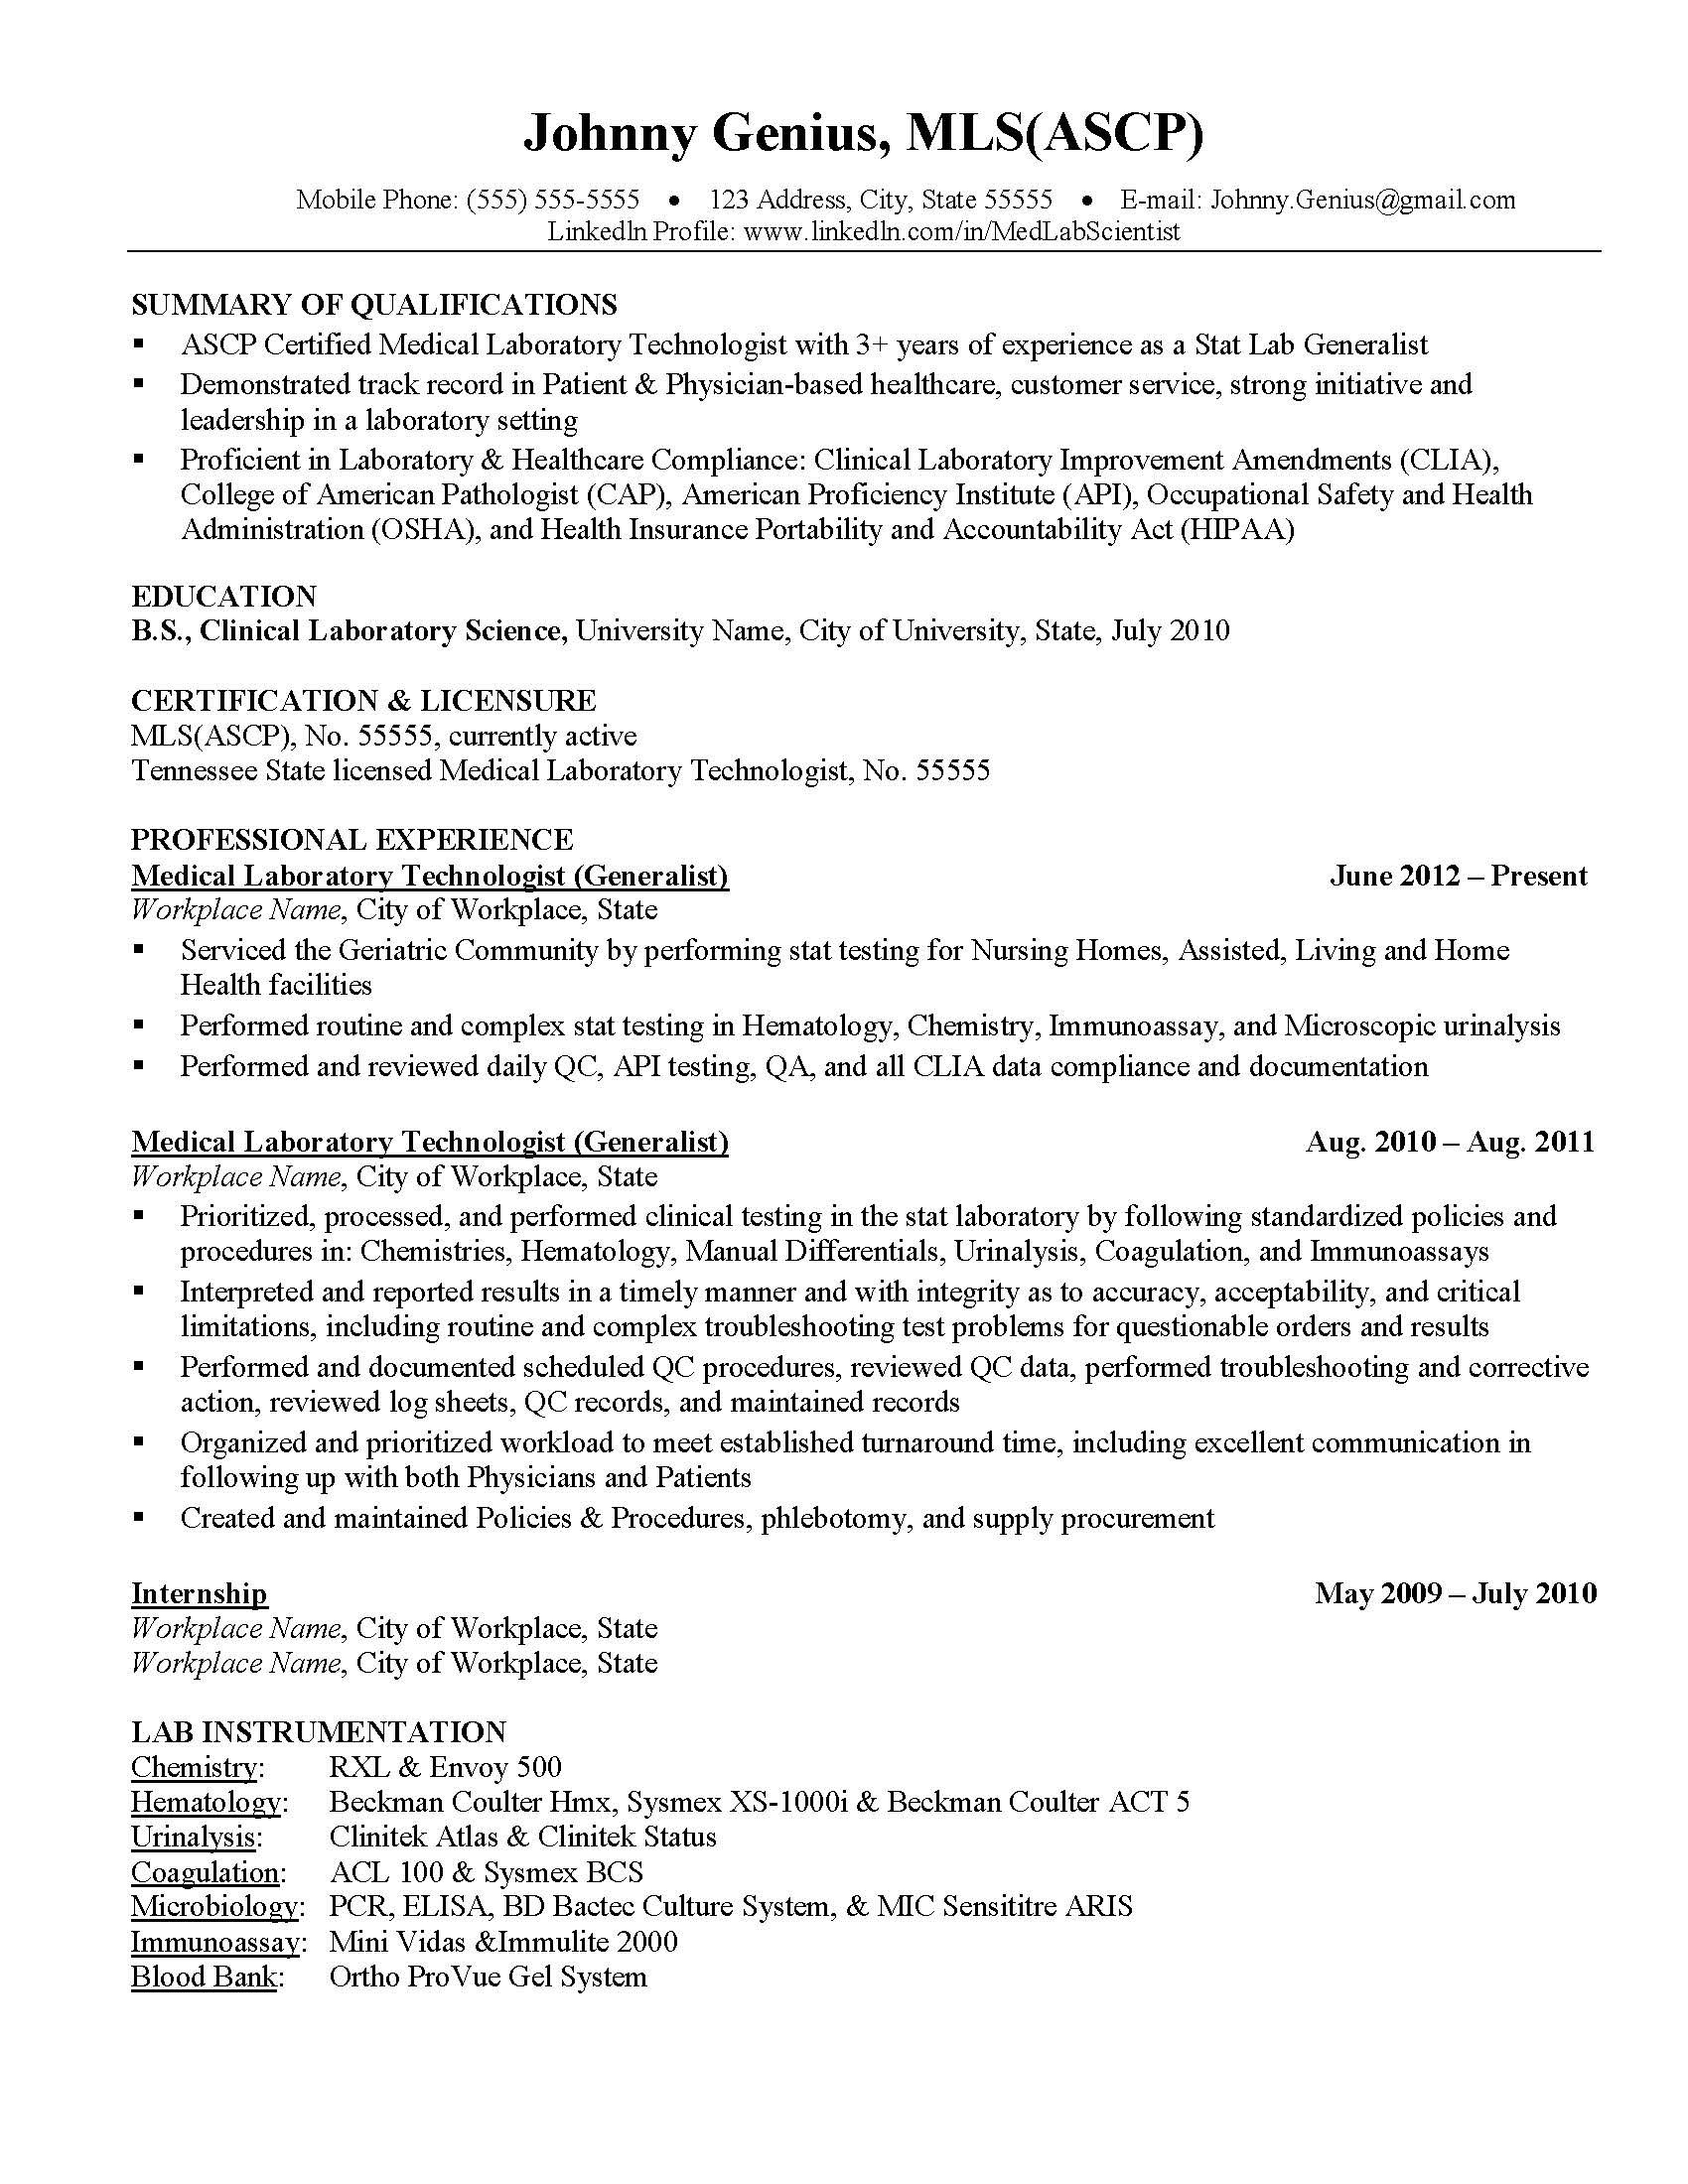 Creating A Resume For Laboratory Professionals  Venngage  Free